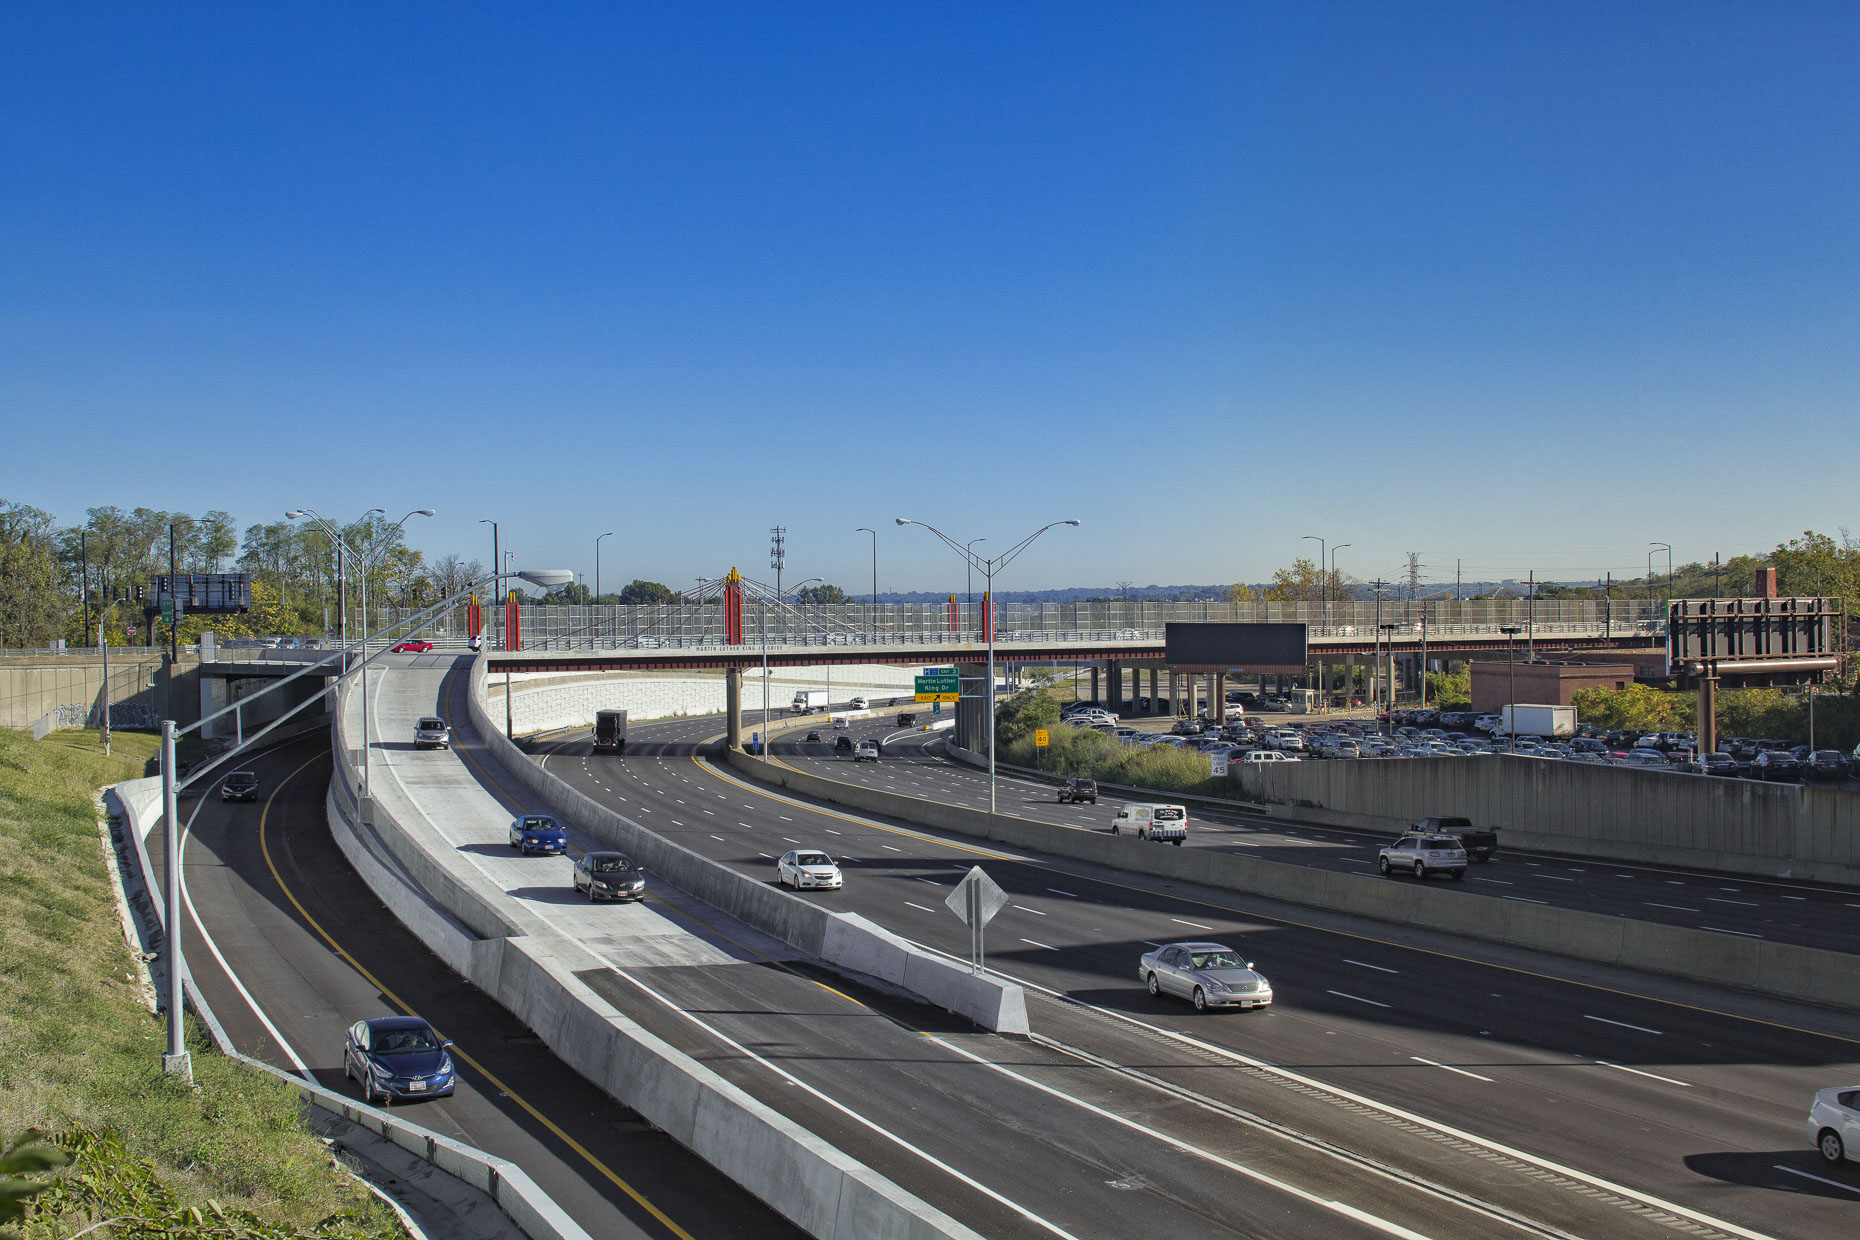 US I-71 Martin Luther King Drive Interchange in Cincinnati by Kokosing Construction Photographed by Lauren K Davis based in Columbus, Ohio